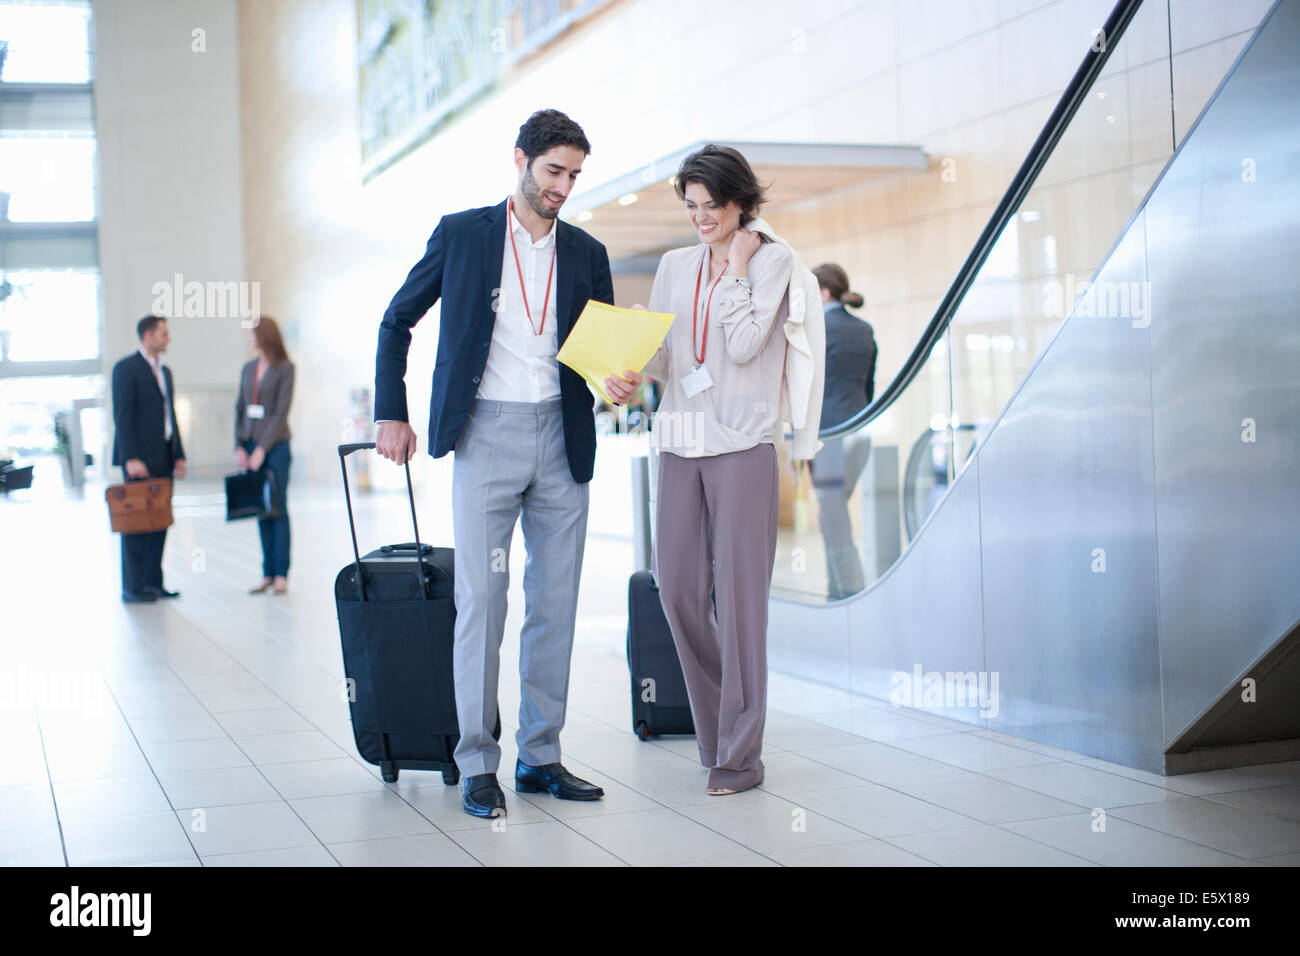 Businessman and businesswoman arriving in conference centre atrium Stock Photo